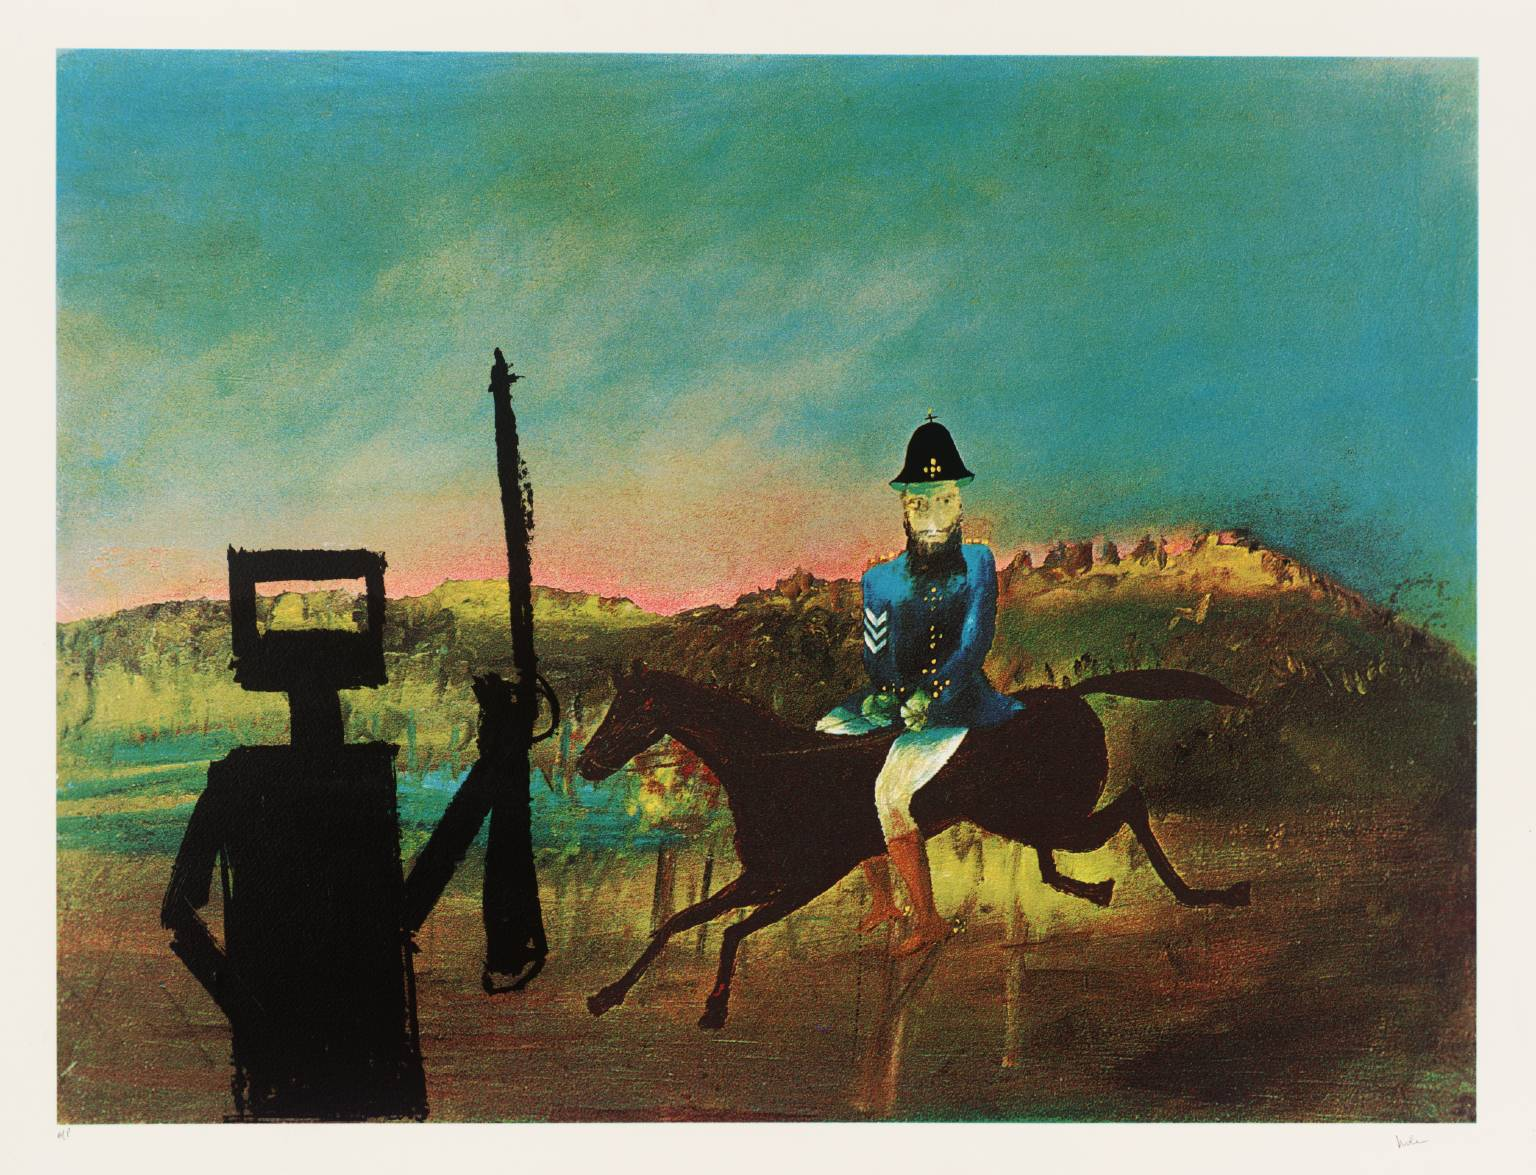 The Evening 1978-9 Sir Sidney Nolan 1917-1992 Presented by Rose and Chris Prater 1979 http://www.tate.org.uk/art/work/P05488